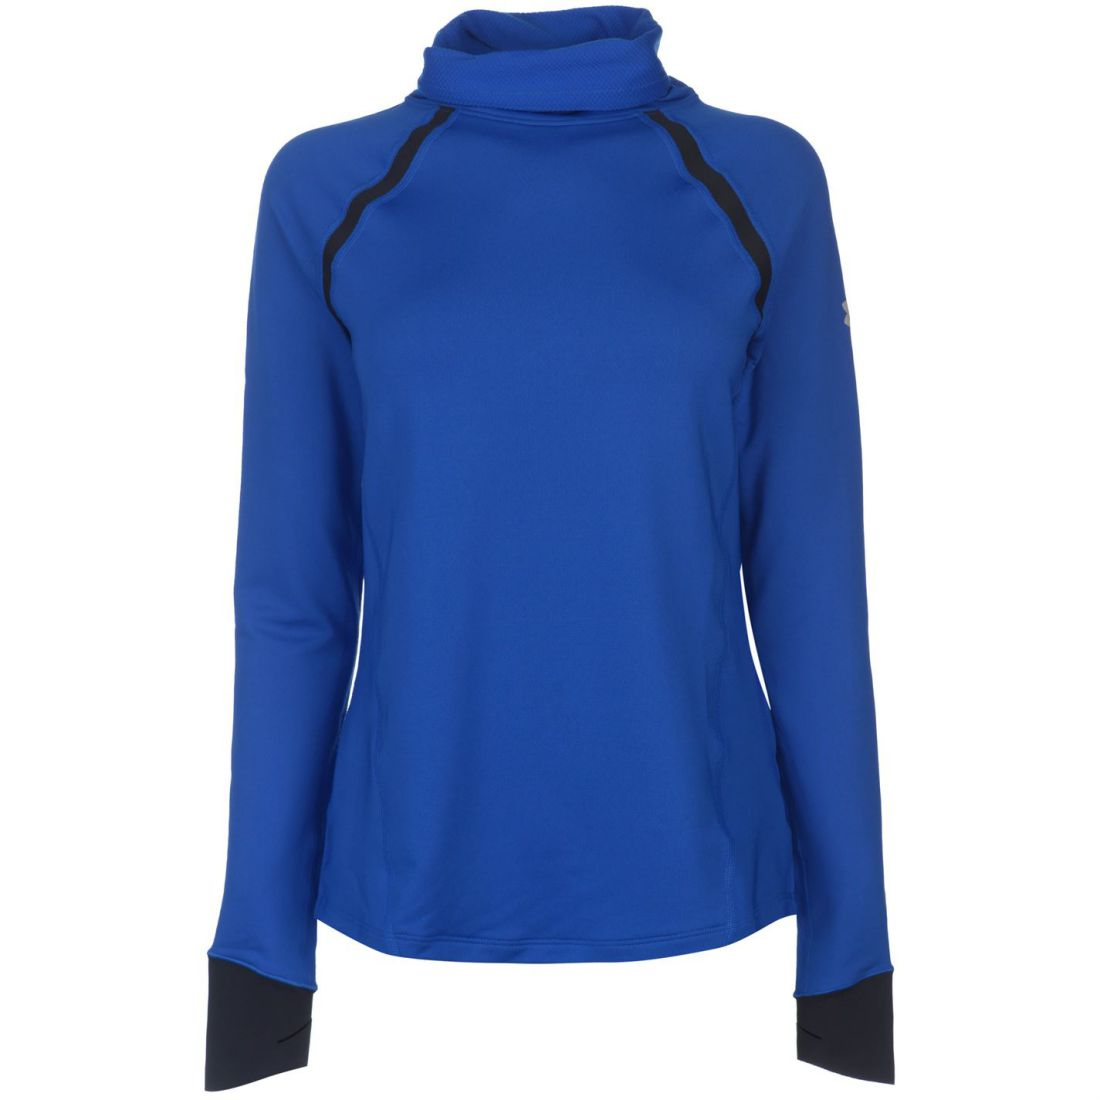 Under Armour Womens ColdGear Reactor Funnel Neck Running Top ... d77a0e9a7